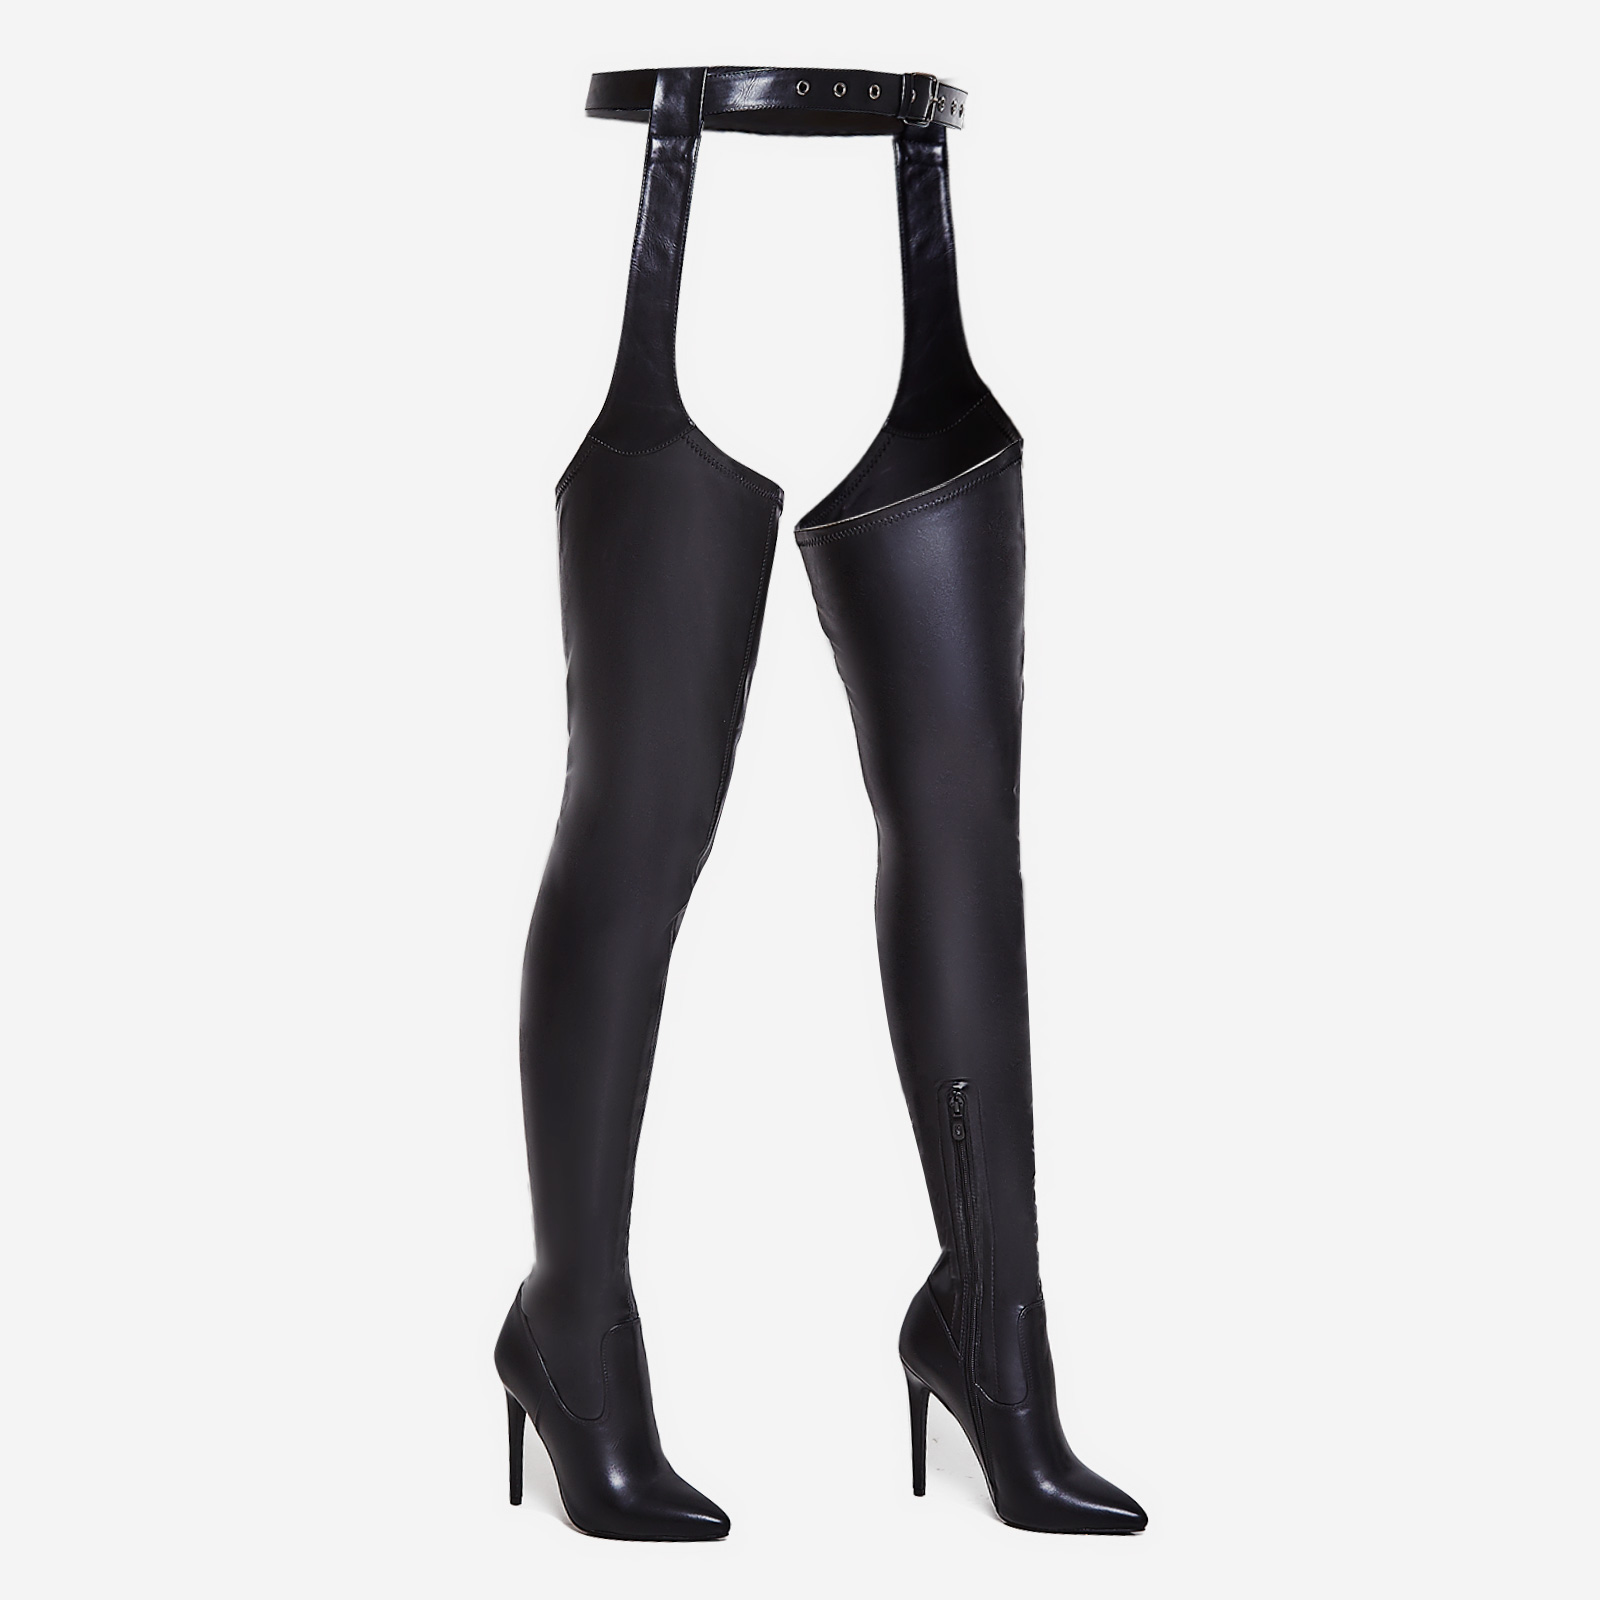 Westloop Belted Over The Knee Long Boot In Black Faux Leather